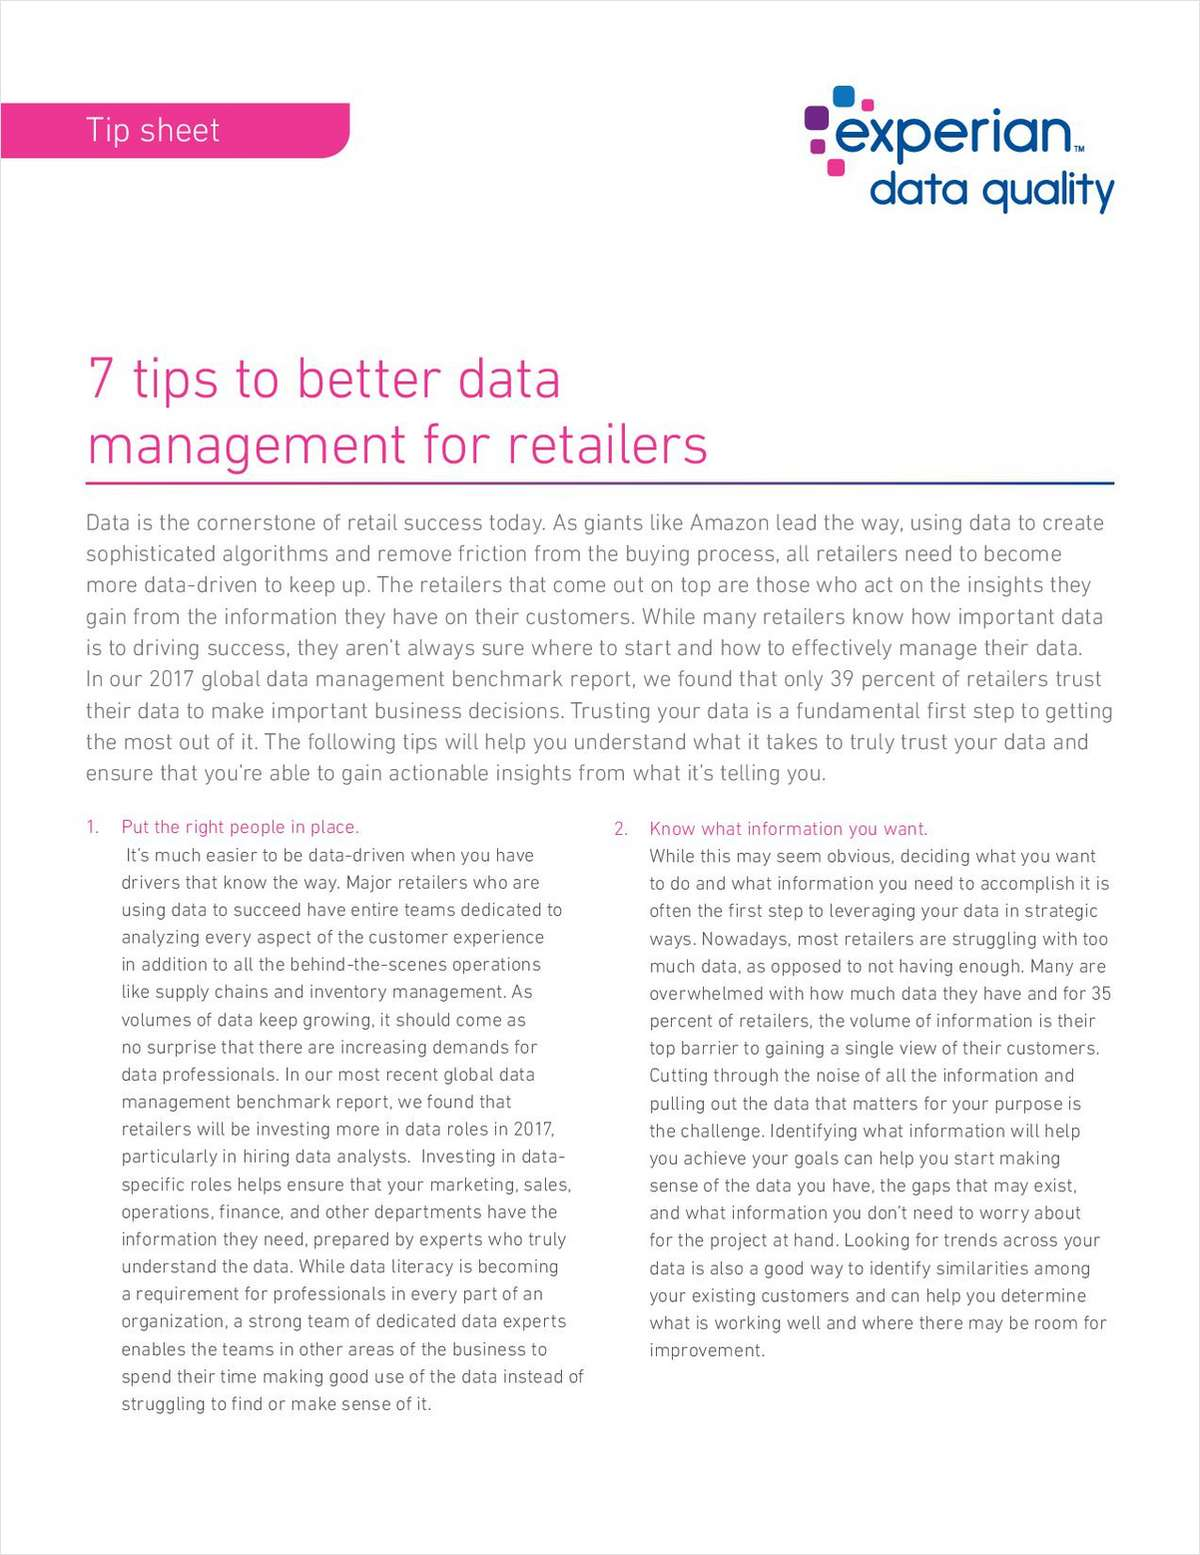 7 tips to better data management for retailers